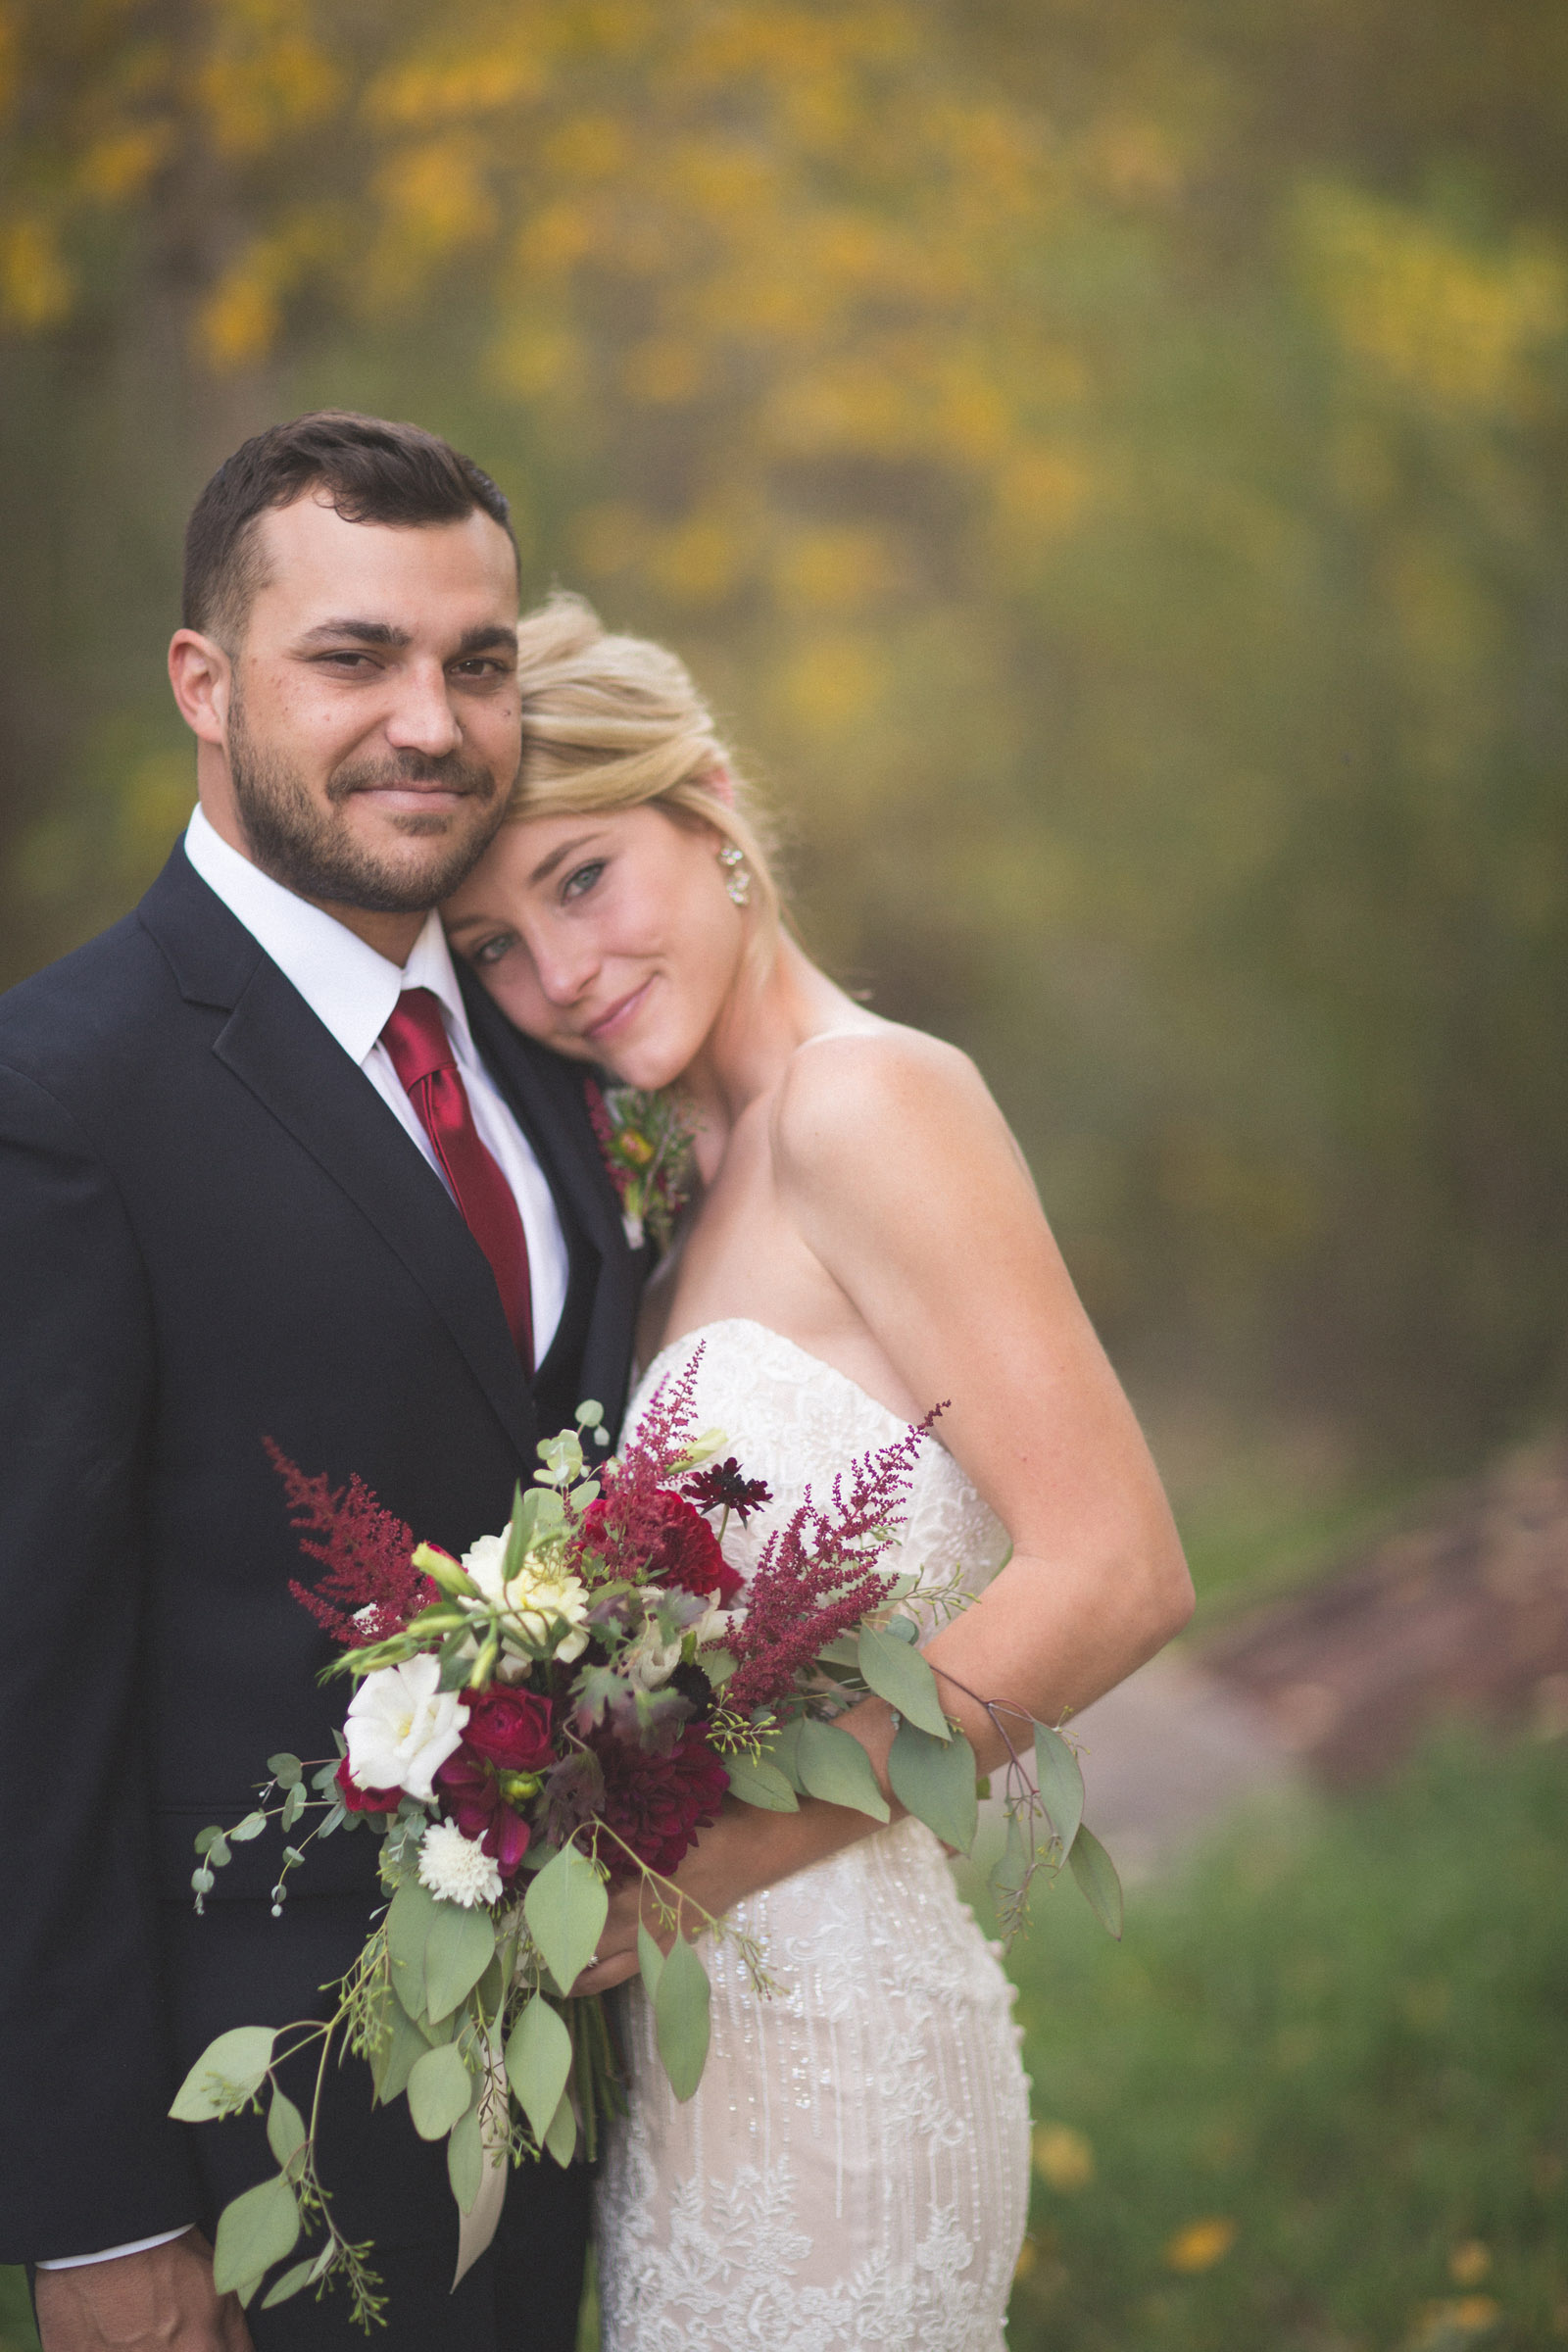 beautiful bride and groom photojournalist portraits at elopement wedding in durango co